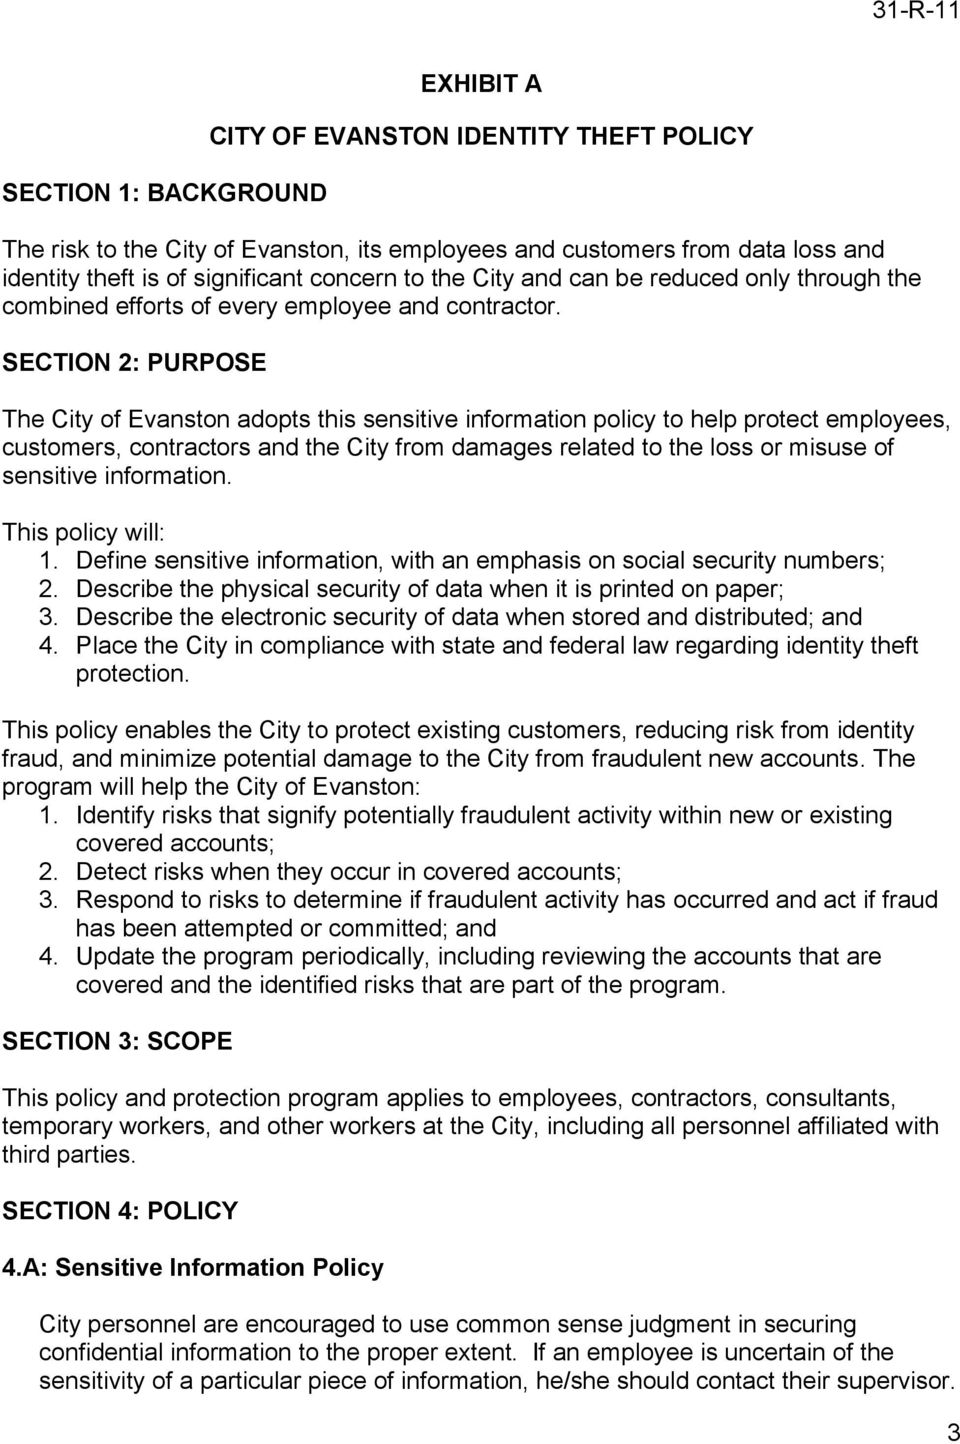 SECTION 2: PURPOSE The City of Evanston adopts this sensitive information policy to help protect employees, customers, contractors and the City from damages related to the loss or misuse of sensitive